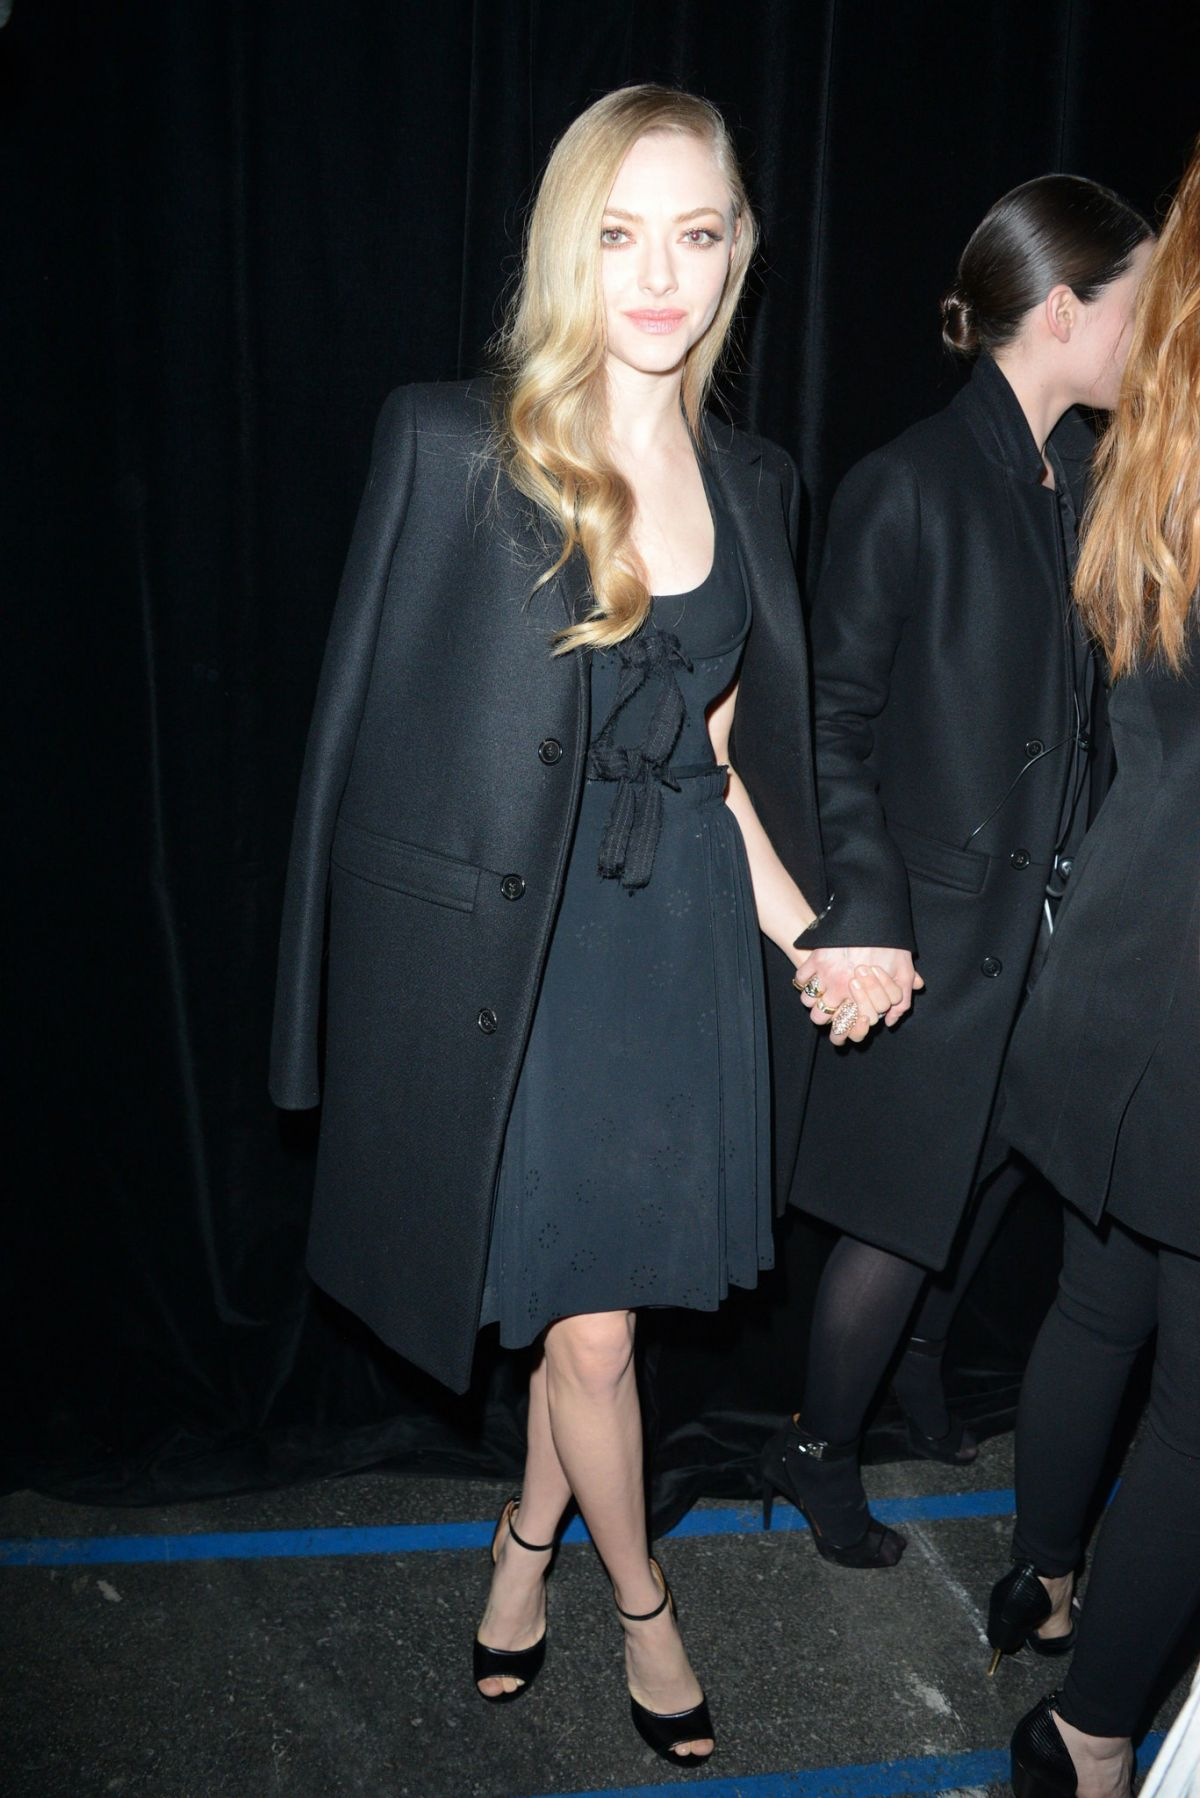 AMANDA SYEFRIED Arrives at Givenchy Fashion Show in Paris